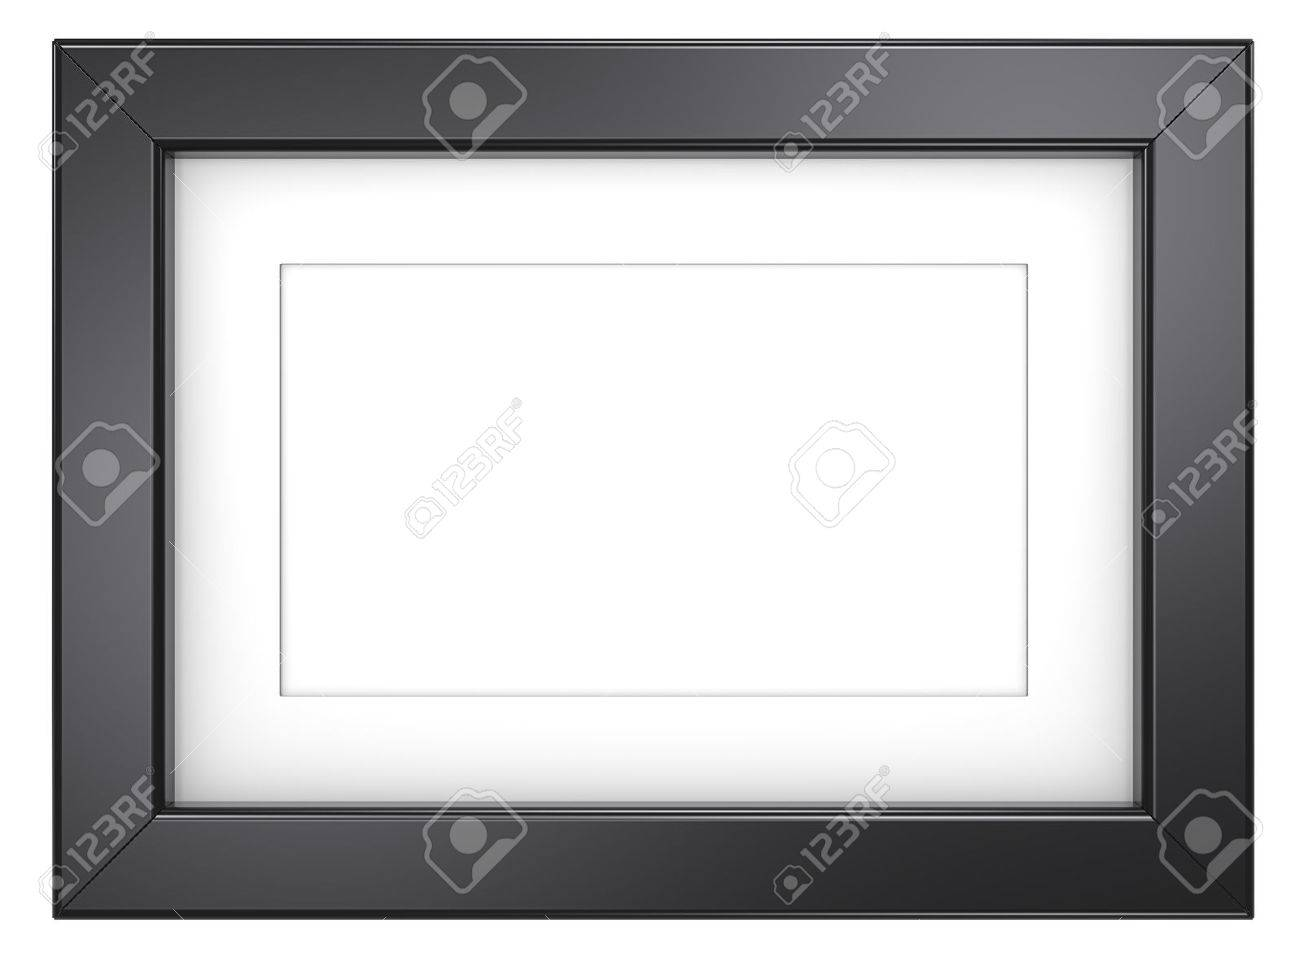 Black picture frame. Picture frame with Passepartout. Black, isolated. Standard-Bild - 39033446